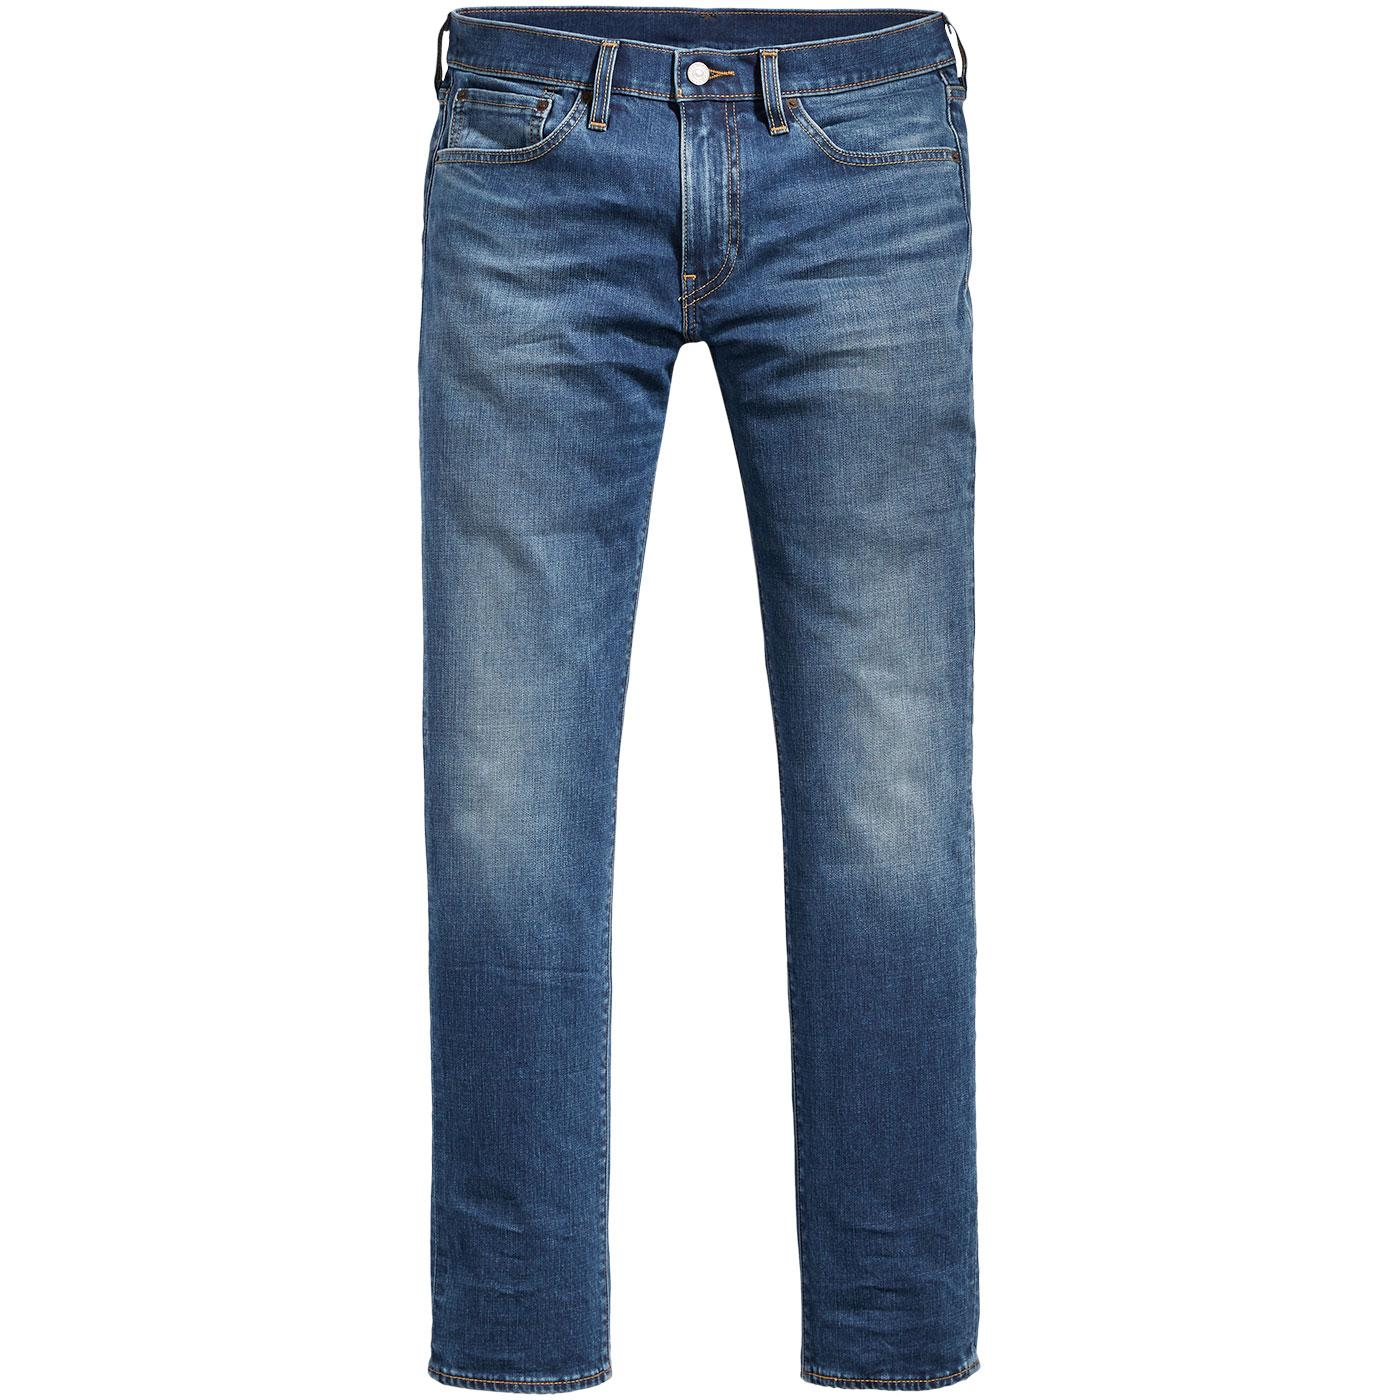 LEVI'S 511 Retro Slim Denim Jeans (Caspian Adapt)